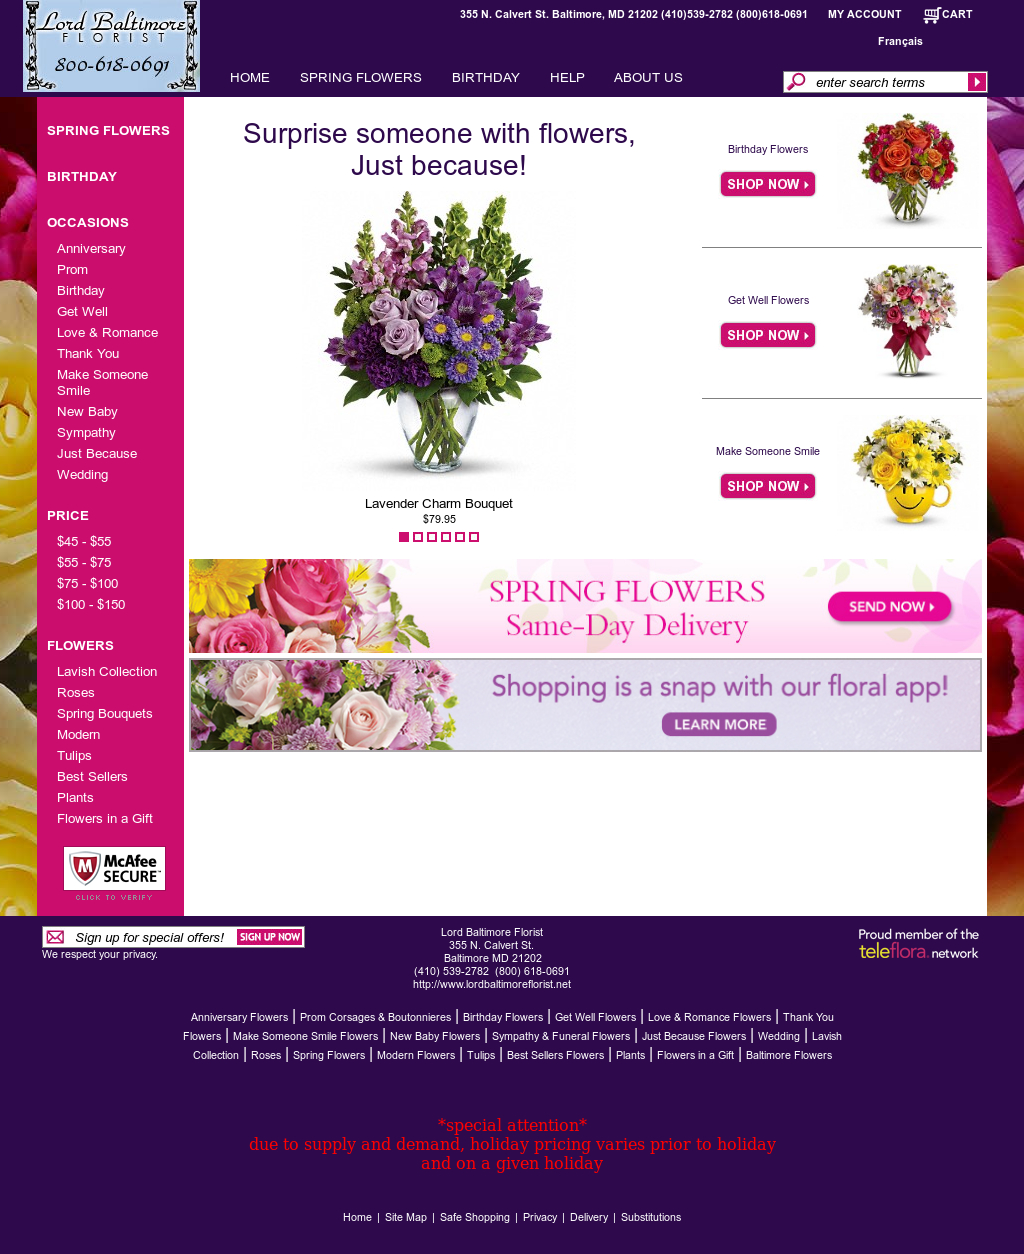 Lord Baltimore Florist Competitors Revenue And Employees Owler